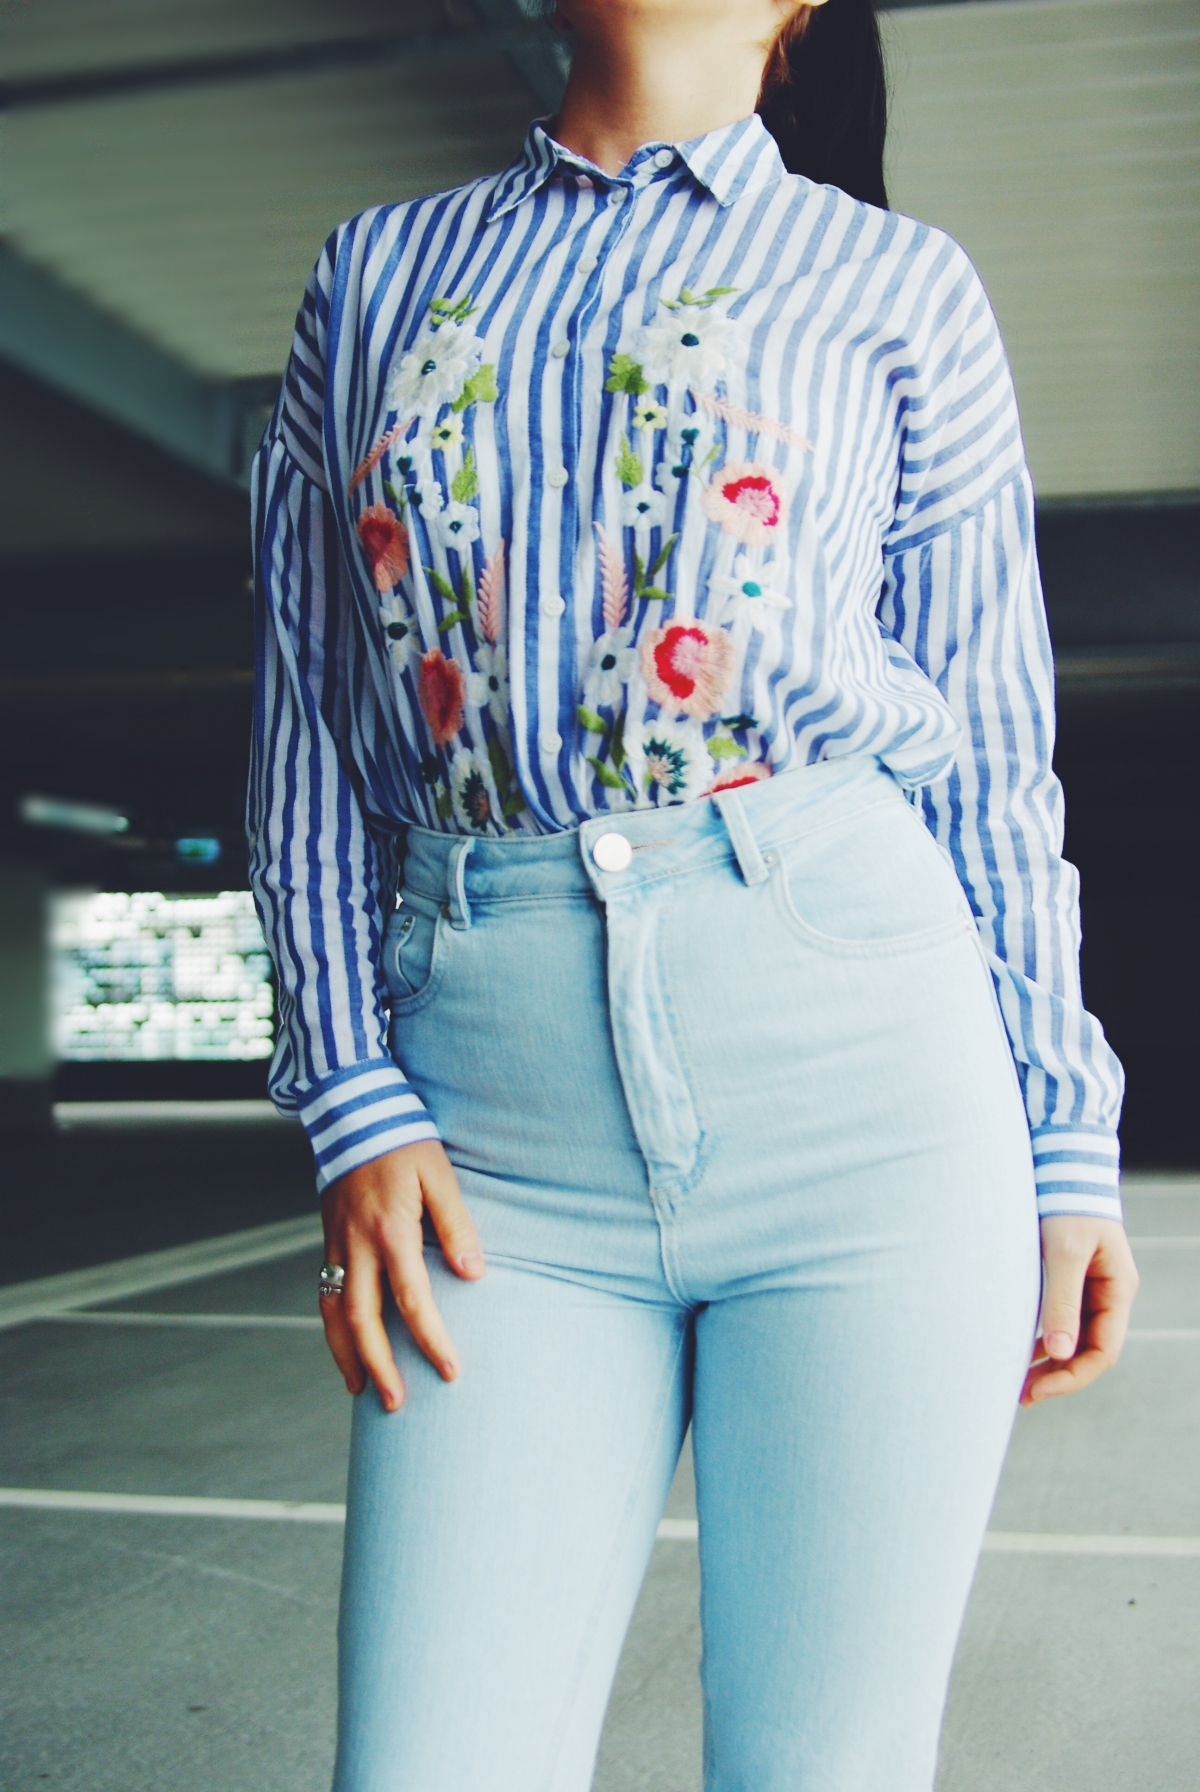 Spring floral trends – Two ways to wear a floral shirt